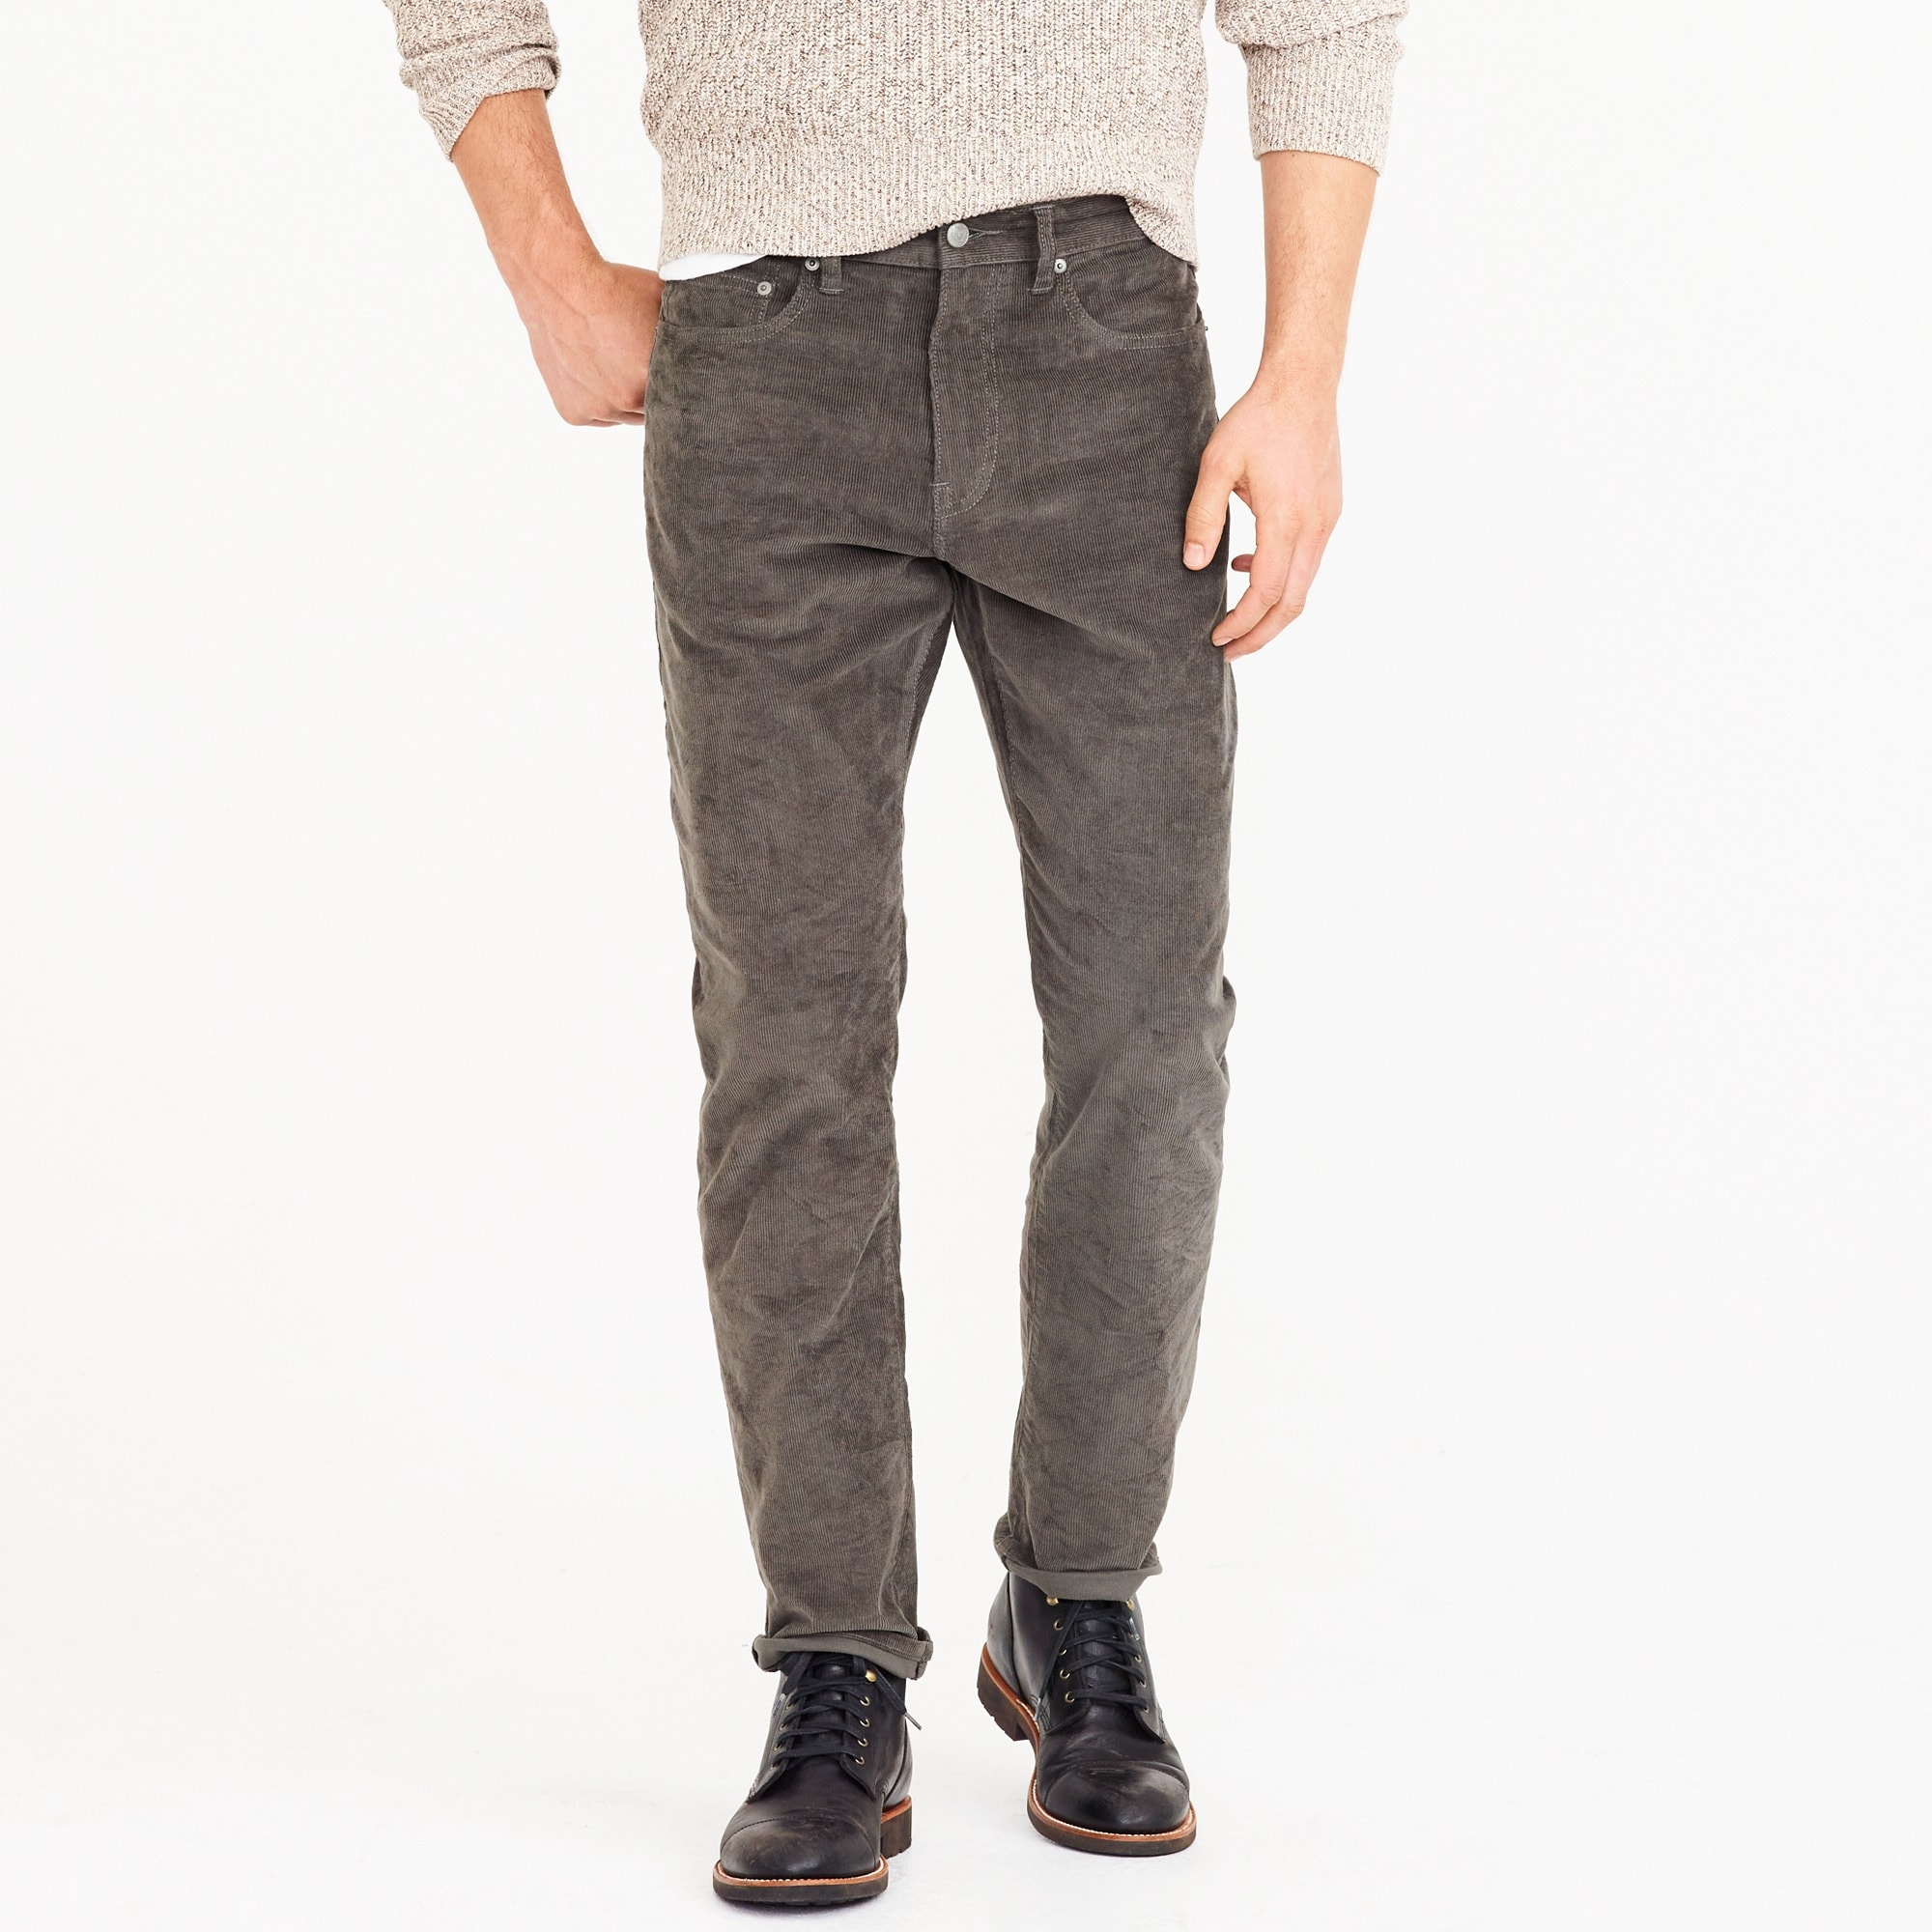 1040 Athletic-fit pant in corduroy men pants c